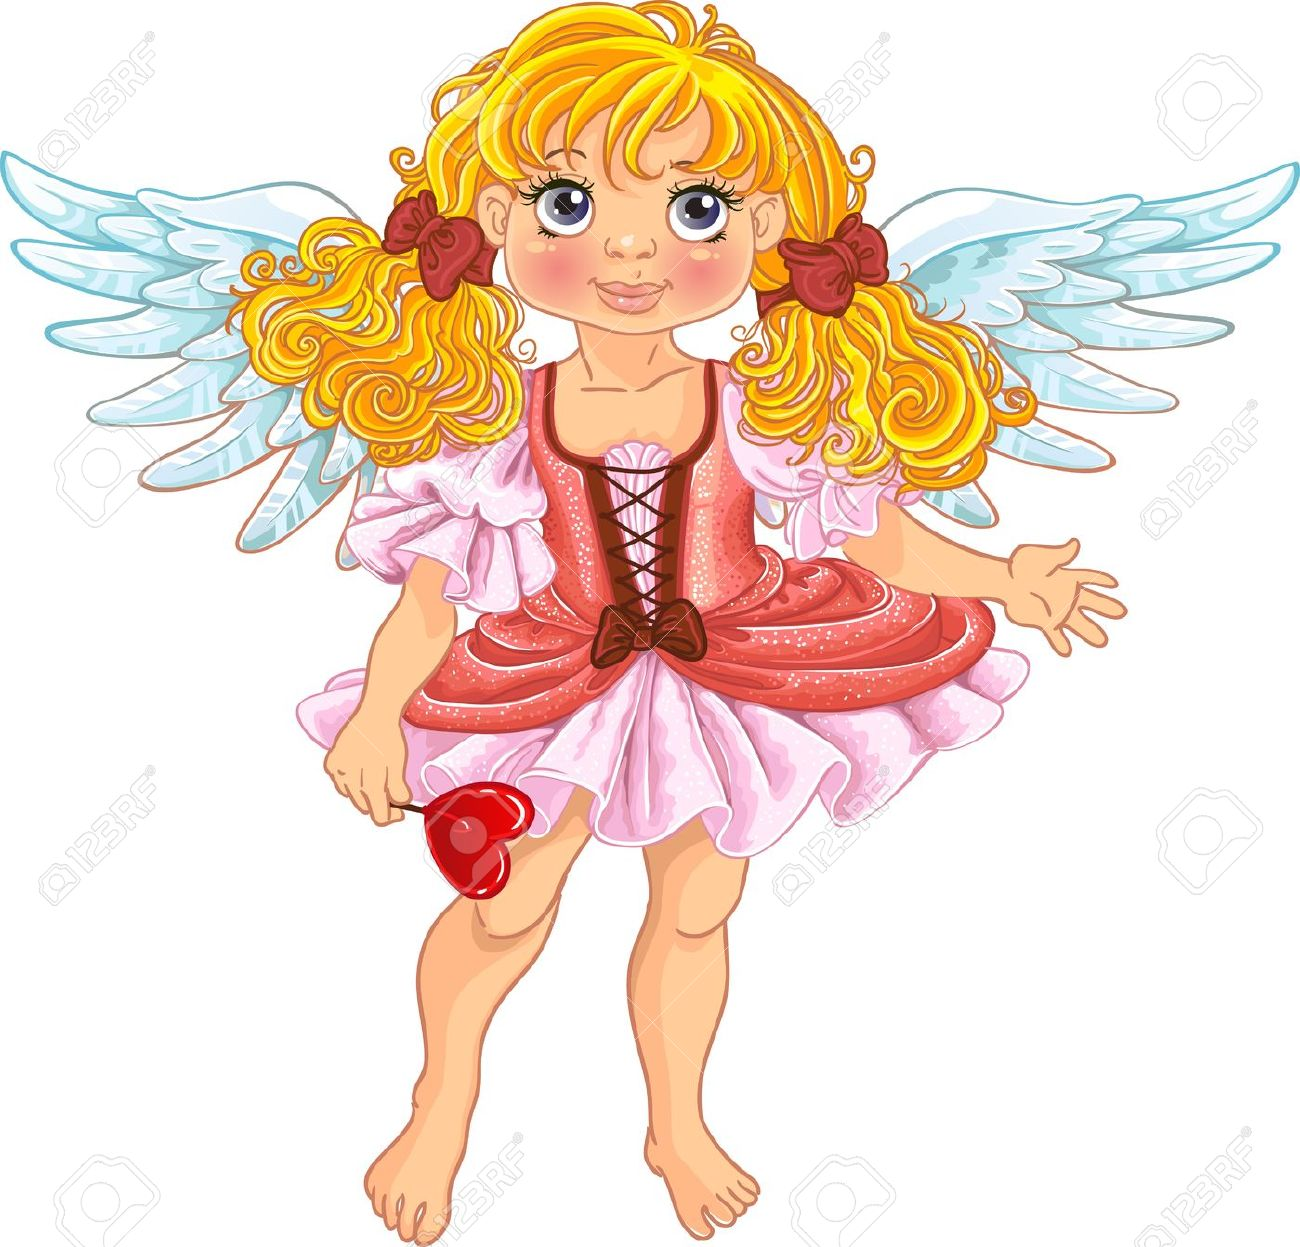 fun girl angel clipart #8